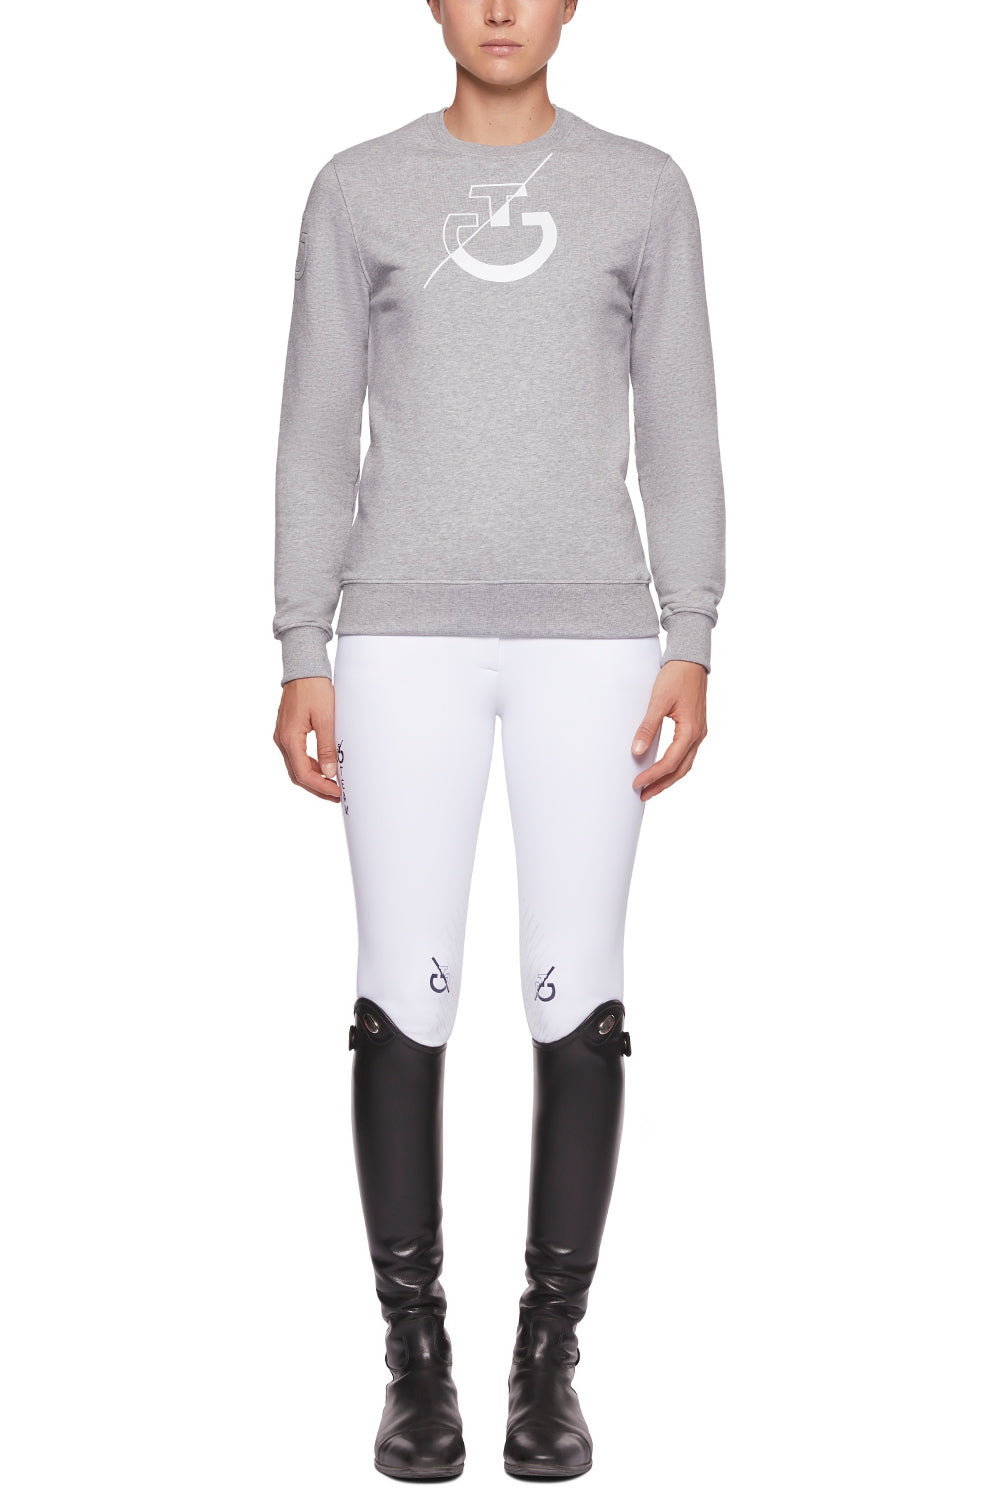 Cavalleria Toscana CT Team Sweatshirt